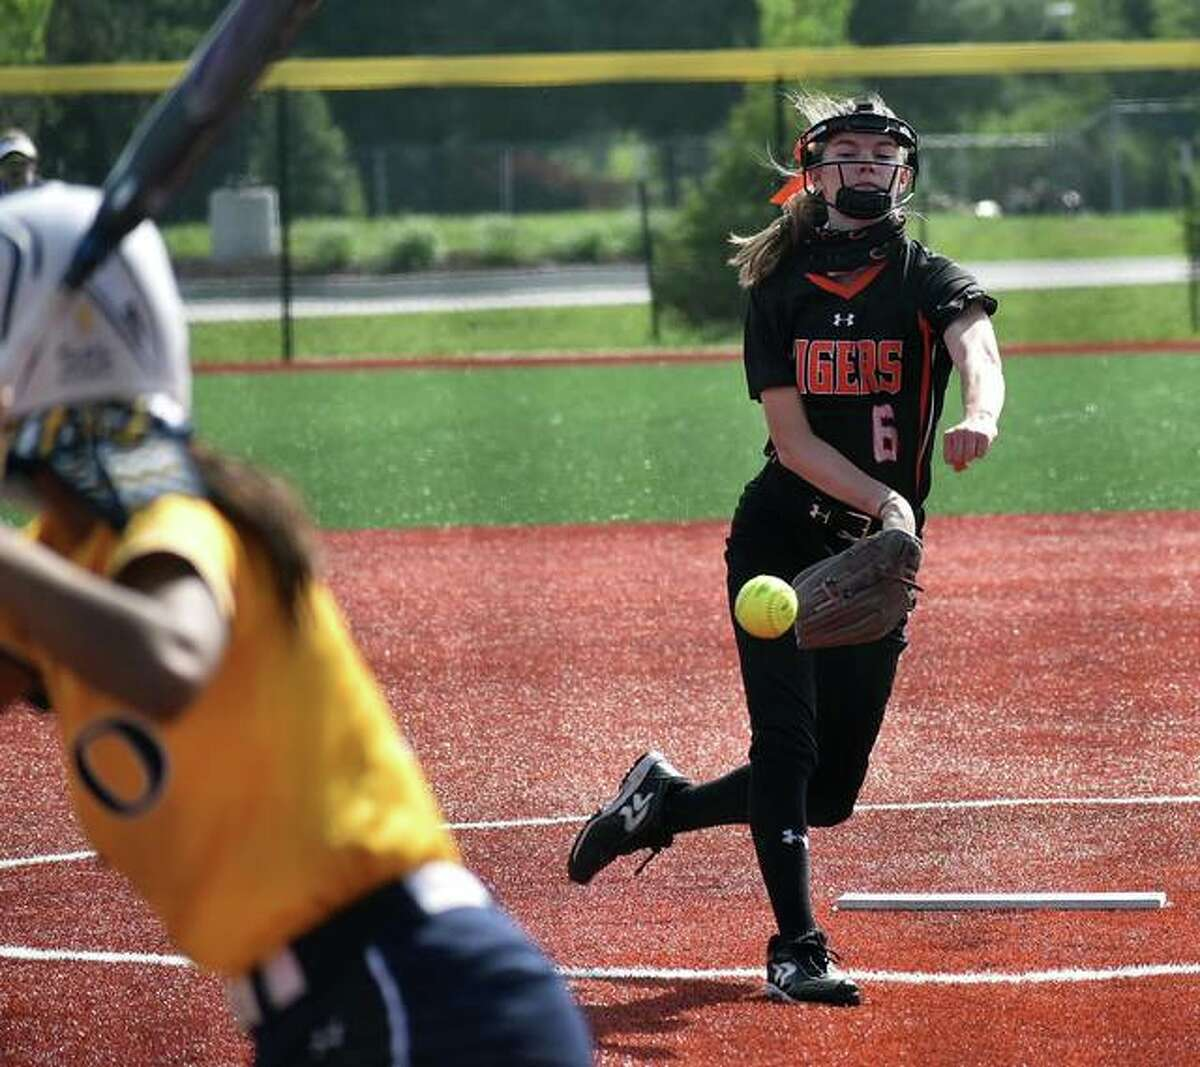 Edwardsville starting pitcher Ryleigh Owens delivers a pitch to an O'Fallon hitter in the first inning on Thursday's game inside Plummer Family Park in Edwardsville.